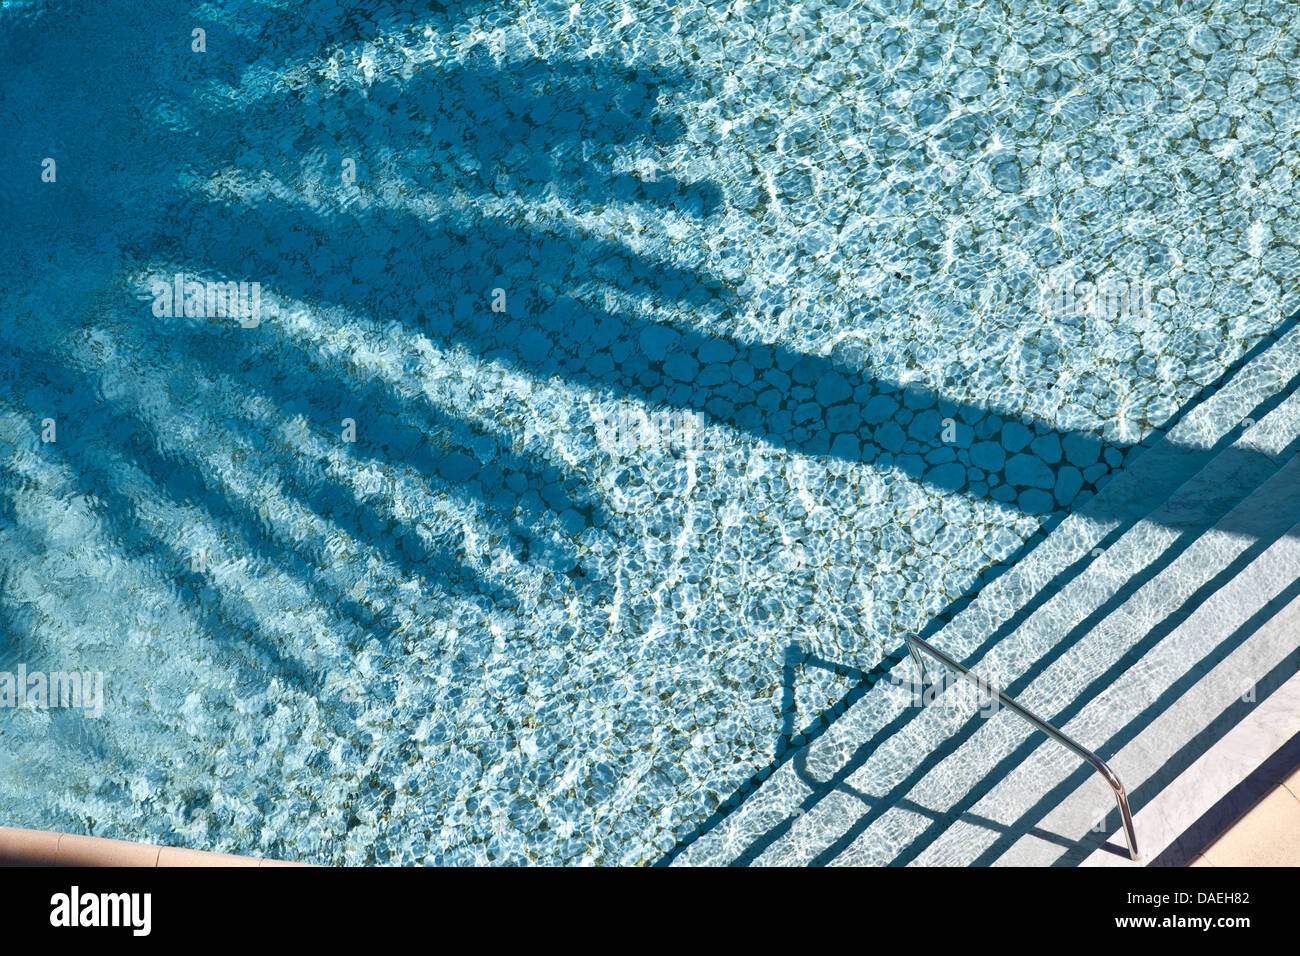 Swimming Pool mit Palmen Baum Schatten im Pool. Stockbild